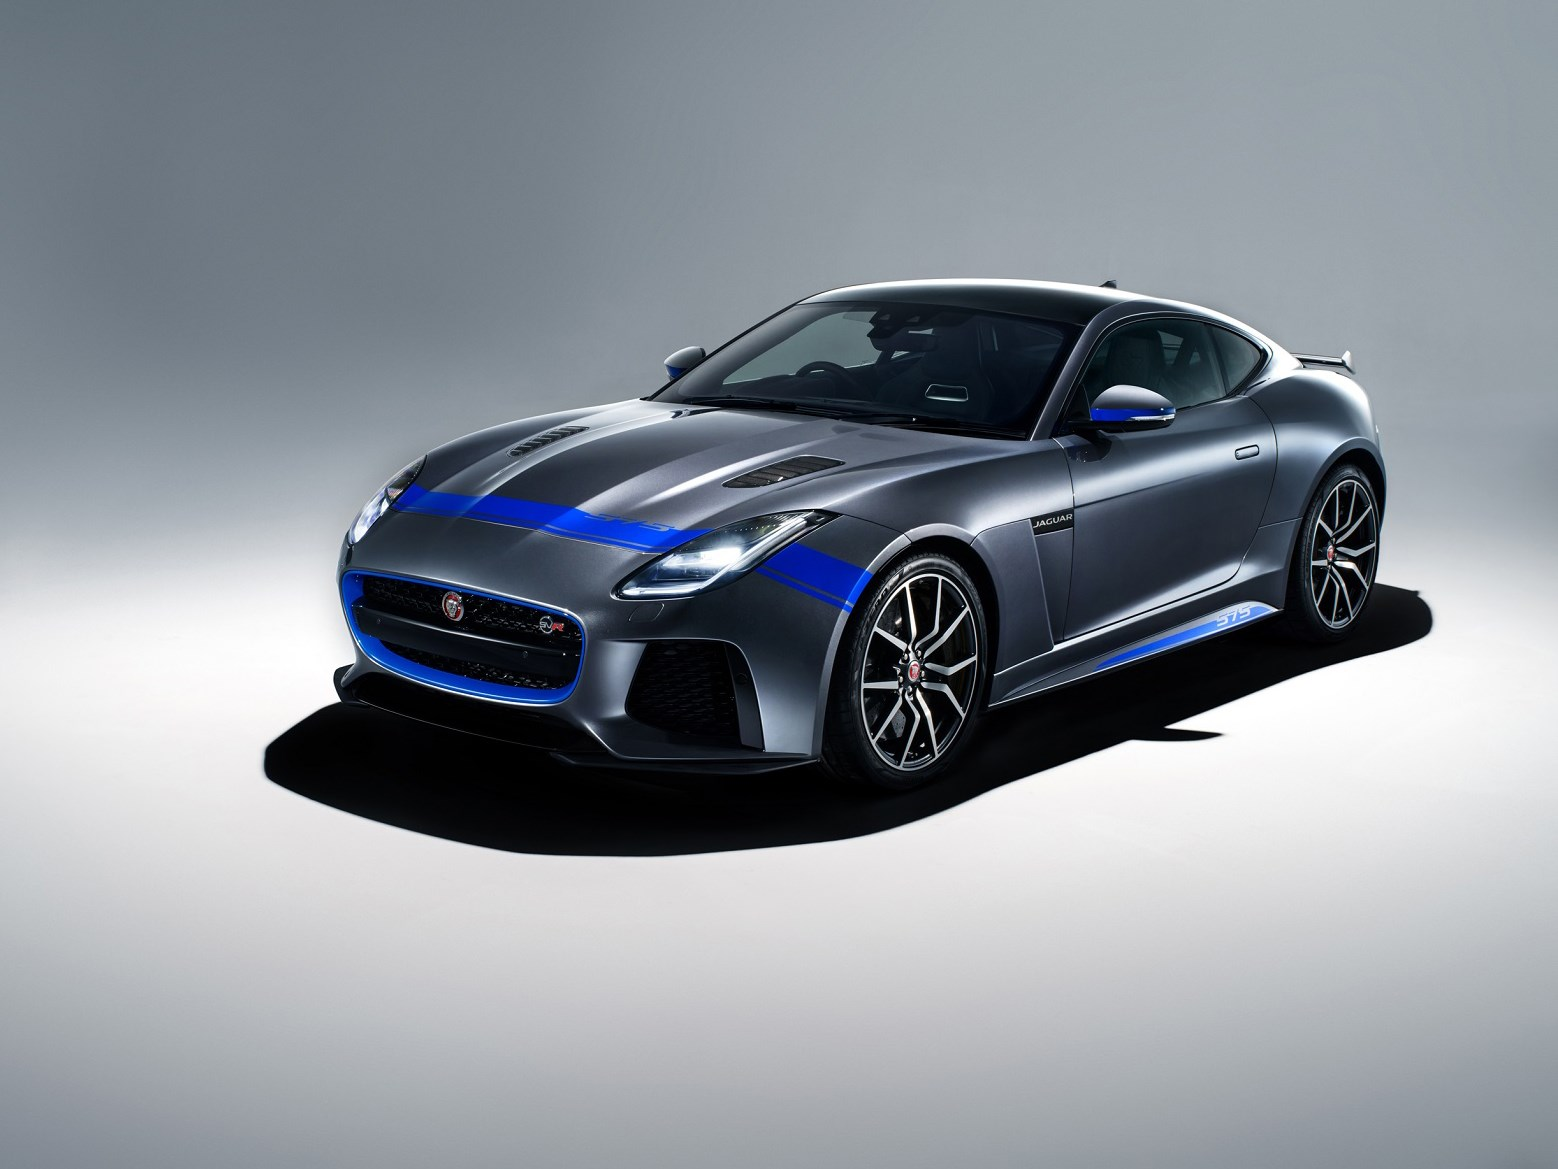 Jaguar Cars News Jaguar F Type Svr Specs News Prices Pictures Car Magazine